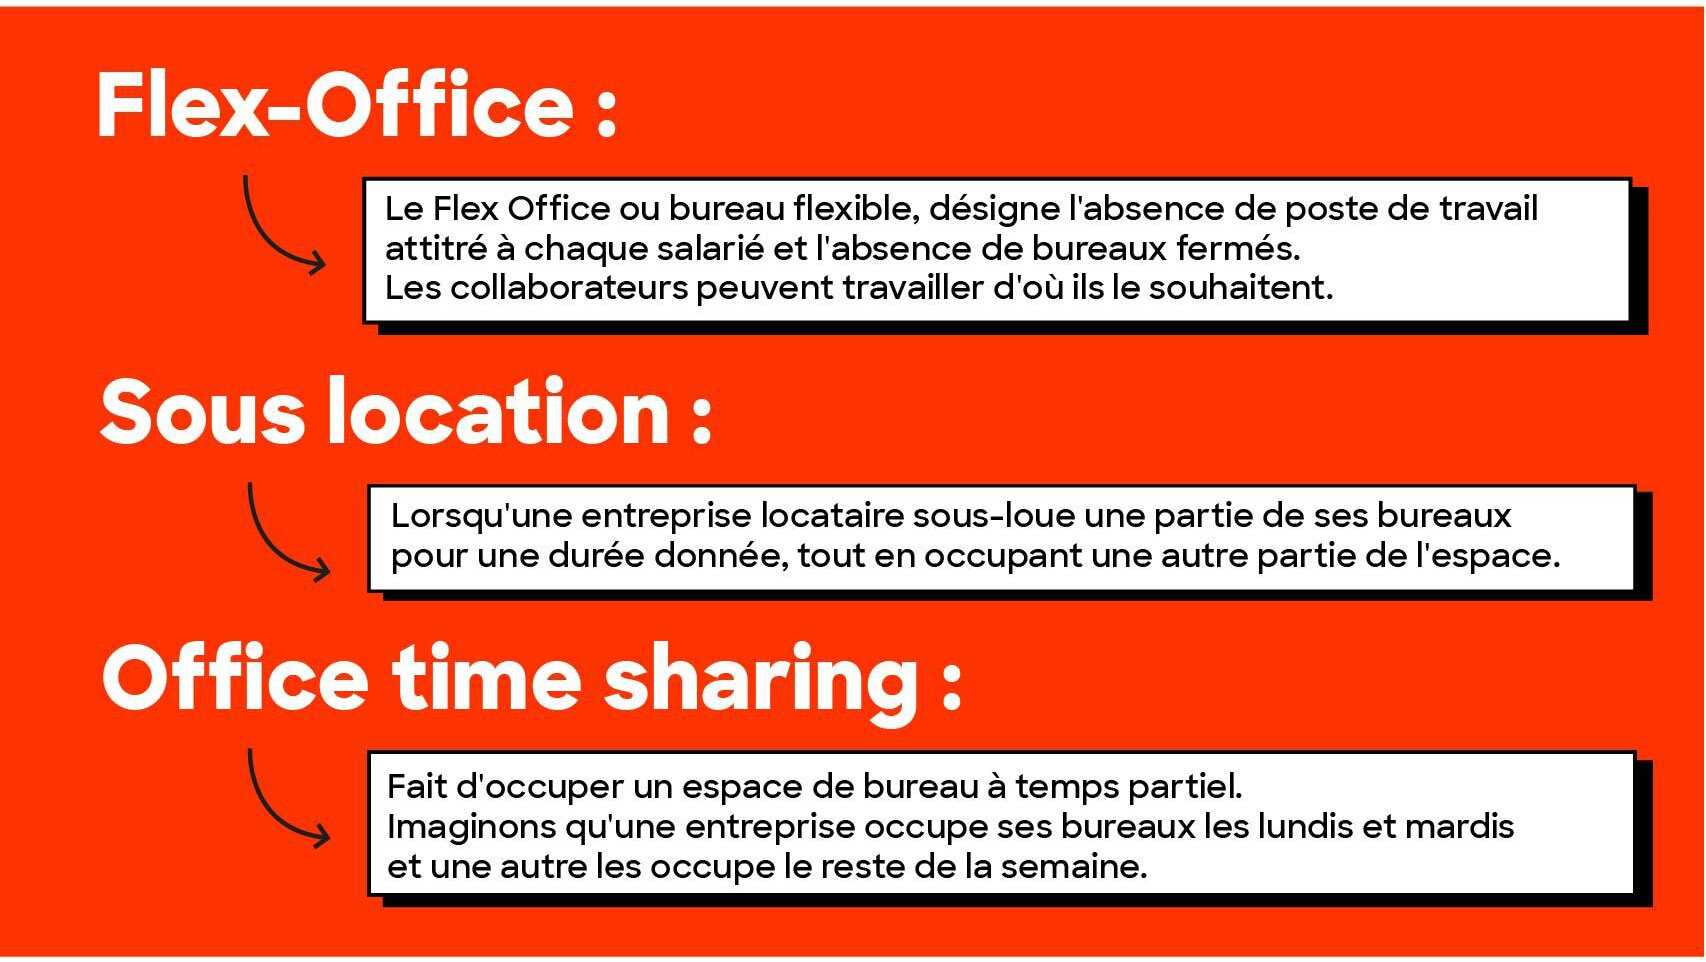 flex office, sous-location, office time sharing